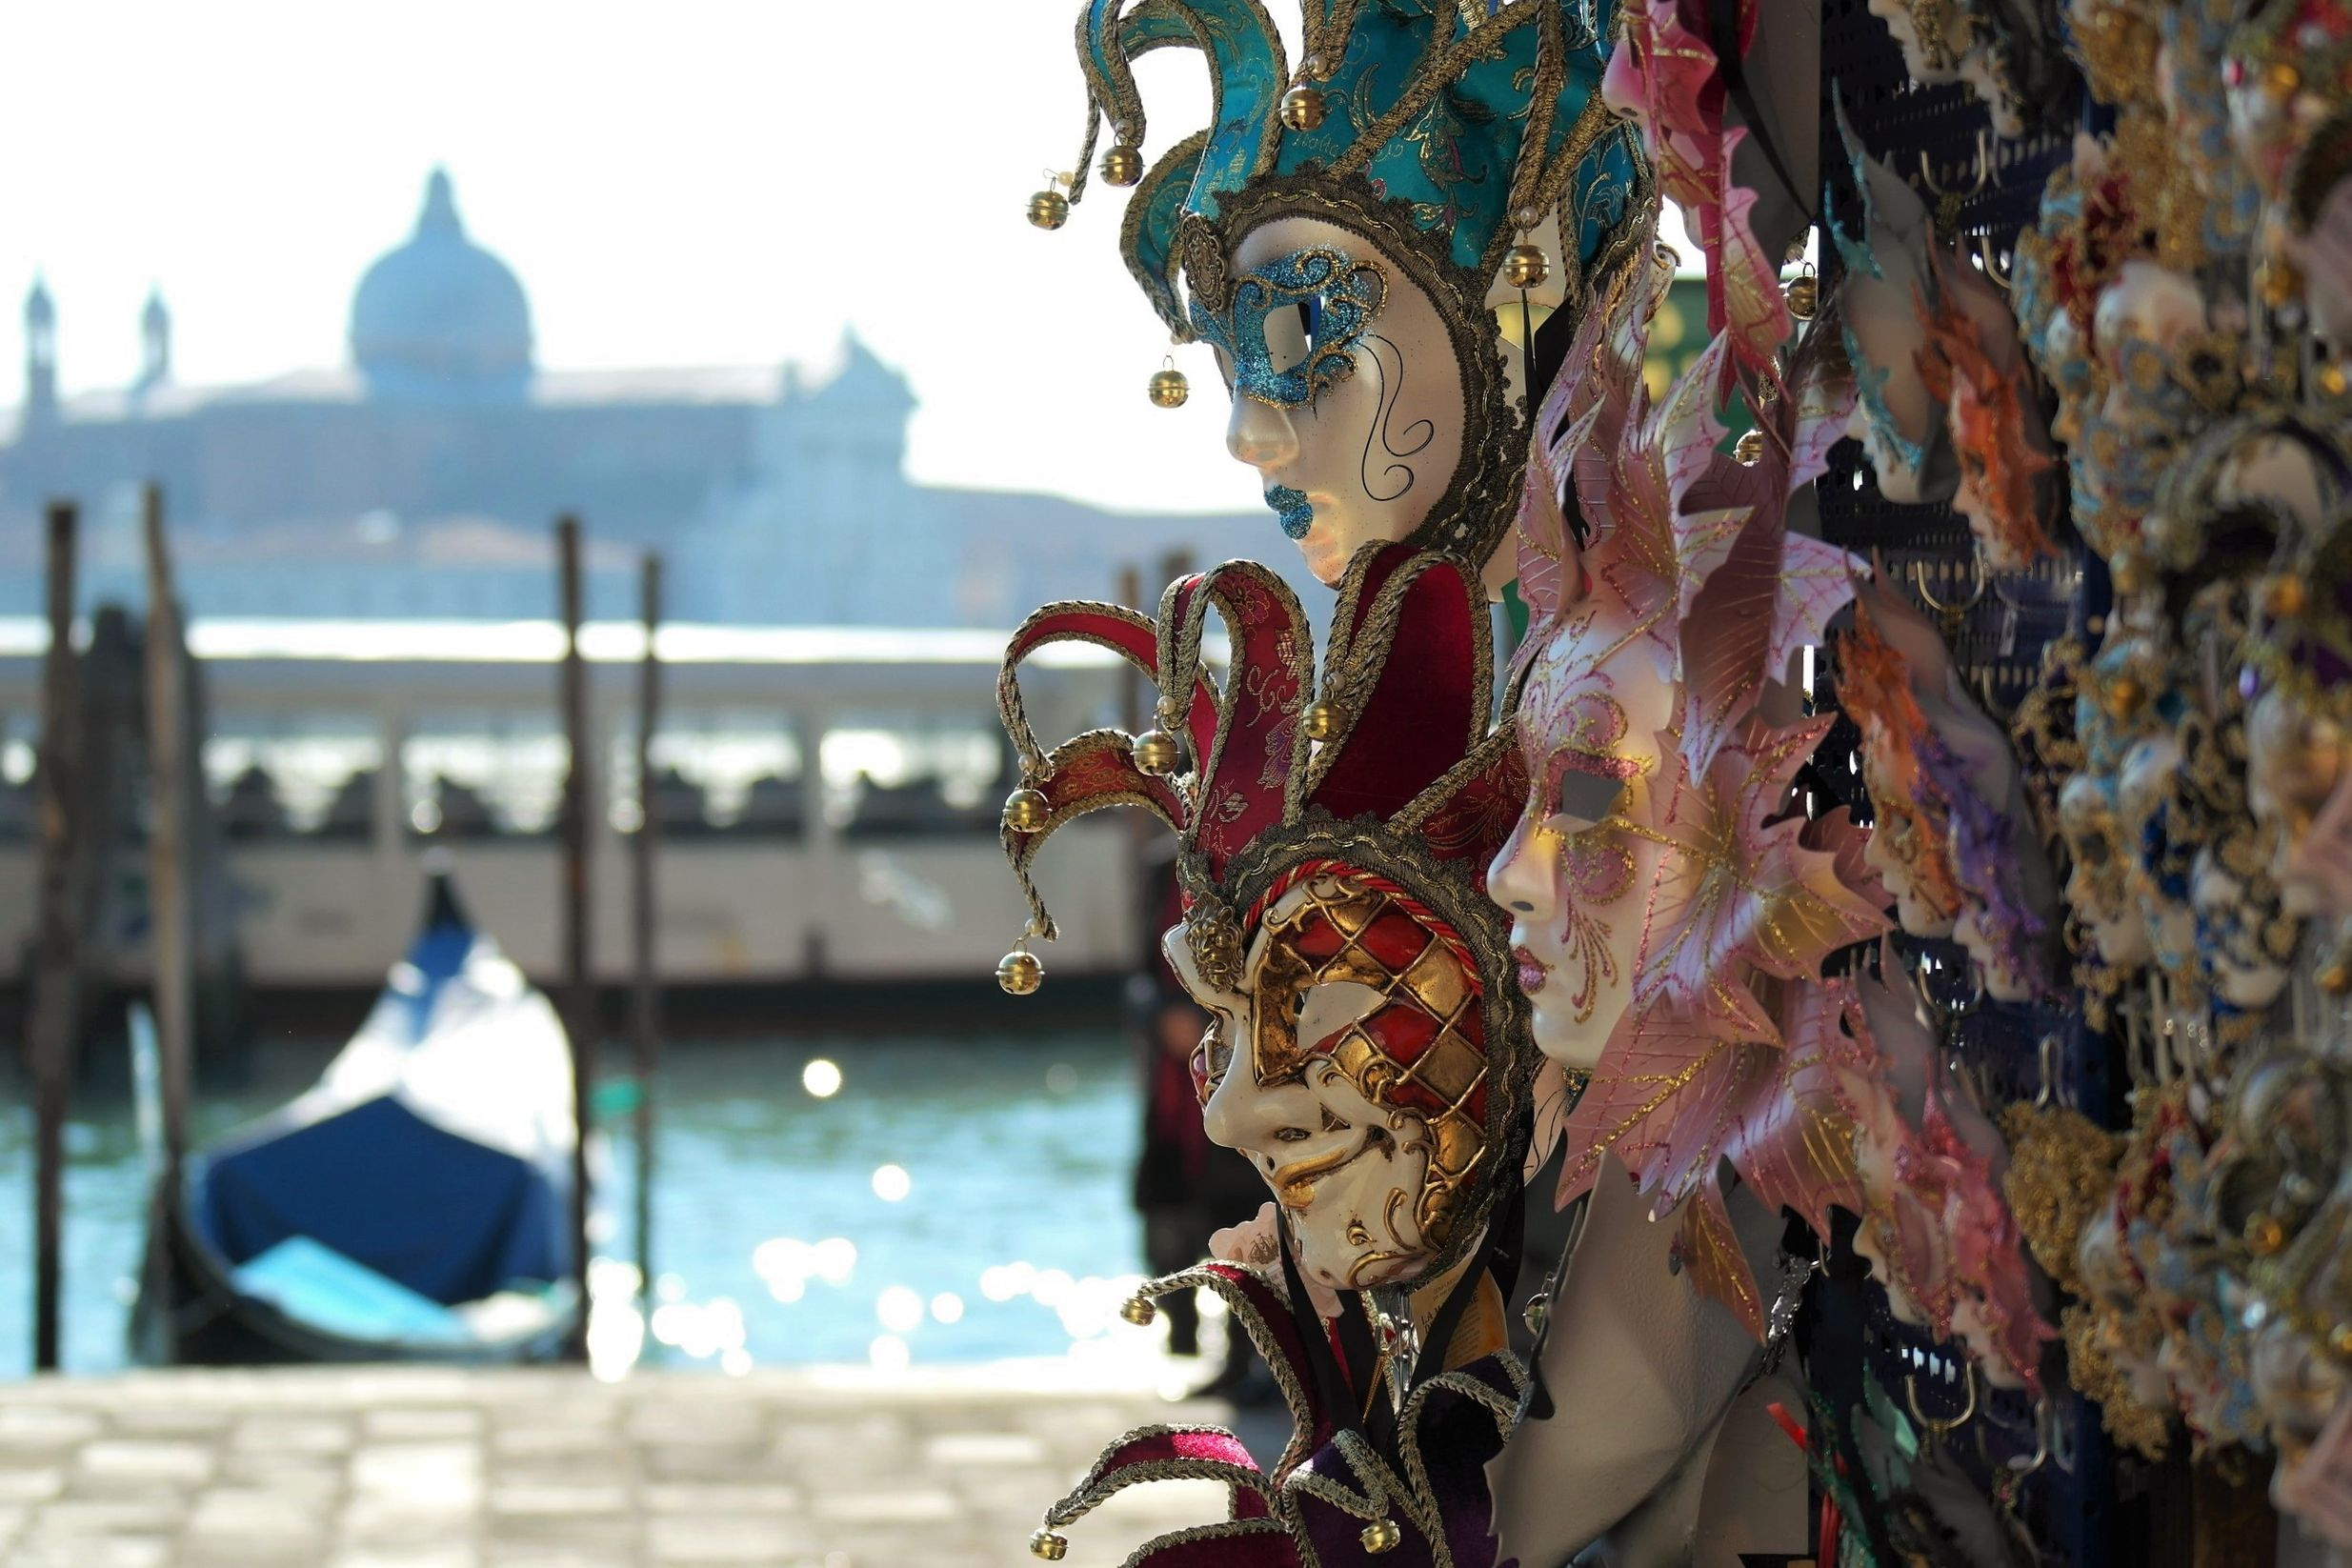 masks displayed near the canal in Venice, Italy during the day